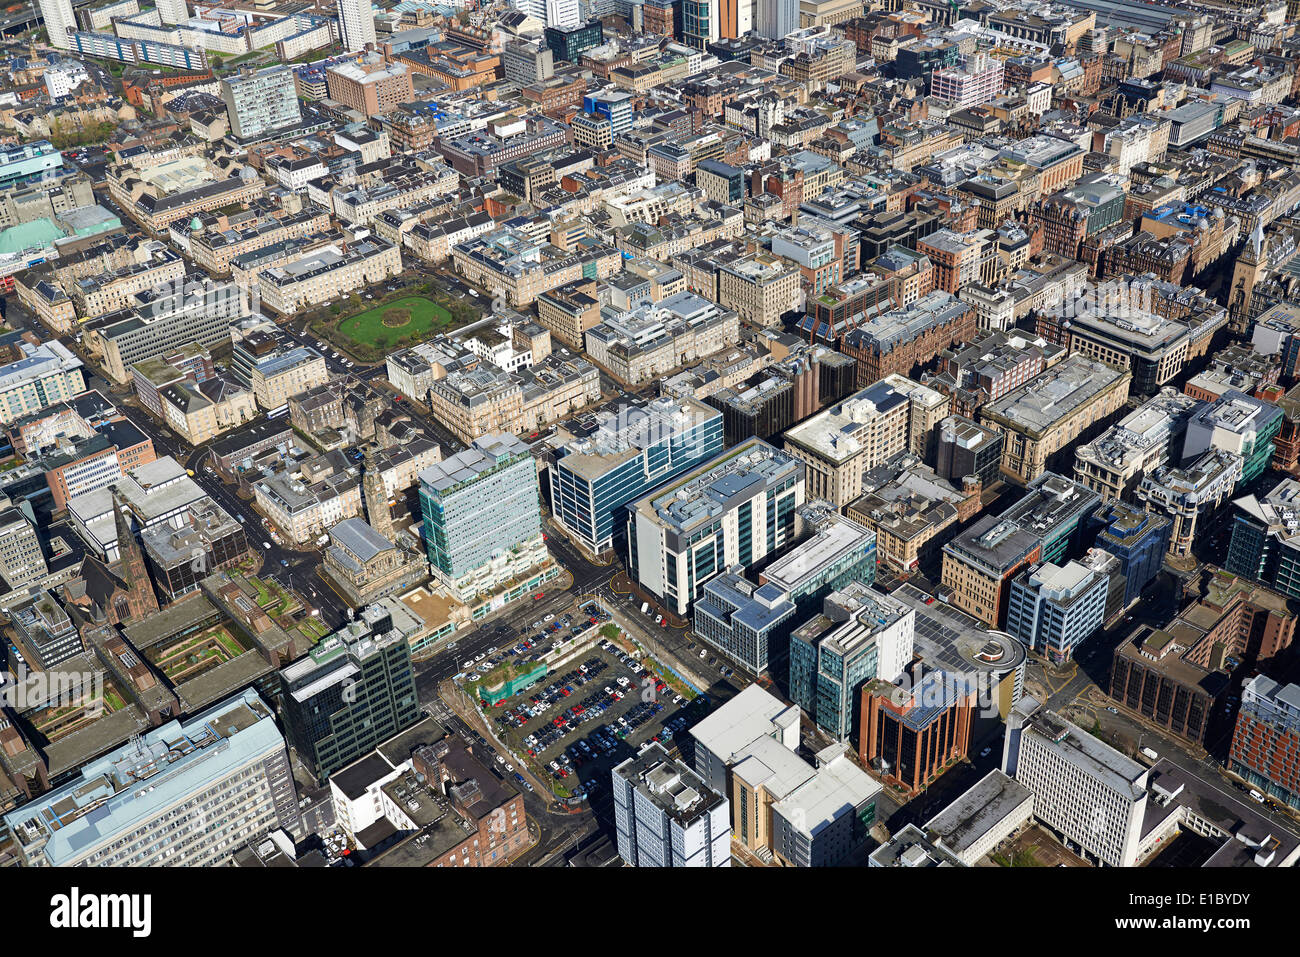 The business district of Glasgow City Centre from the air, Central Stock Photo: 69719159 - Alamy